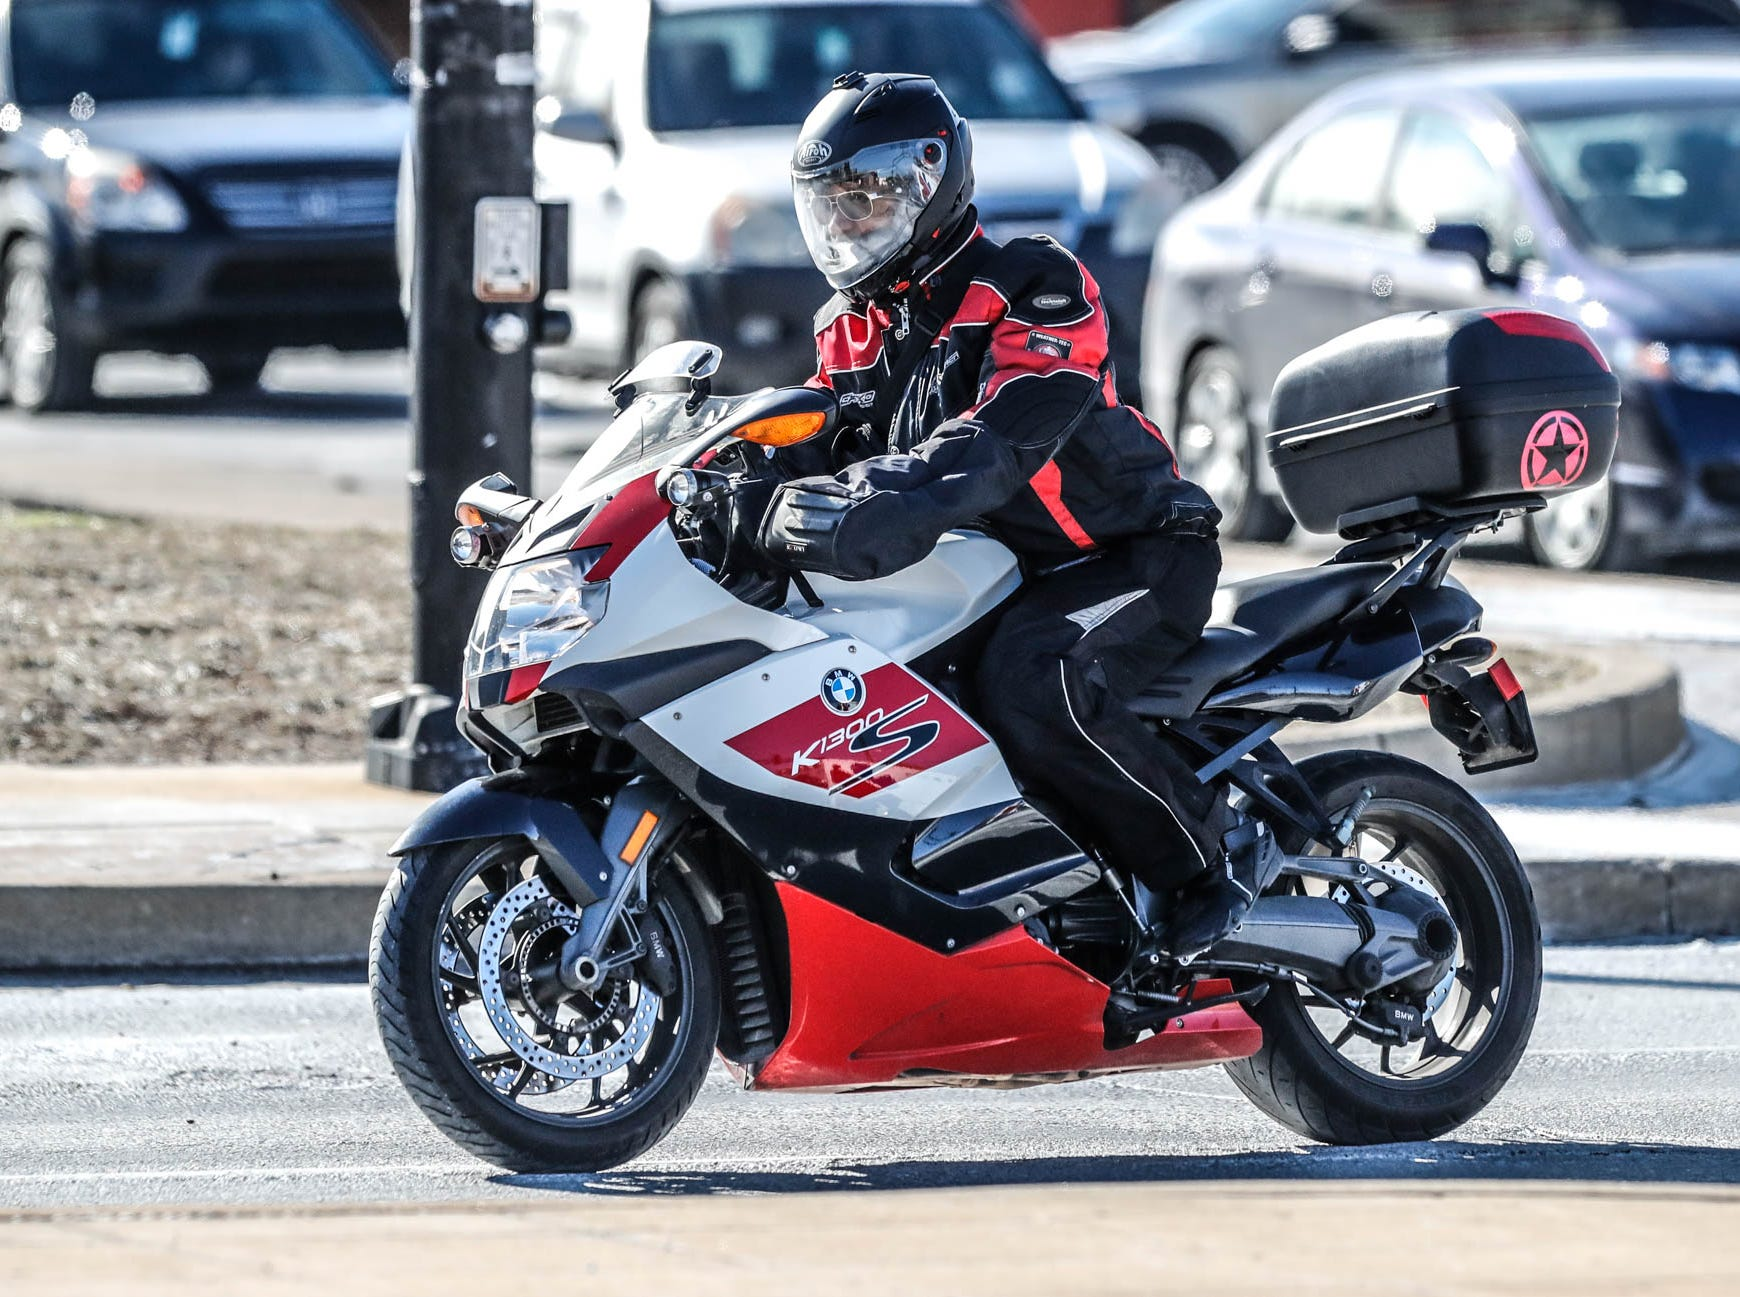 An adventurous motorcycle rider takes a spin on his bike near the intersection of Illinois Street and 38th St. in near sub-zero temperatures on Thursday, Jan. 31, 2019.